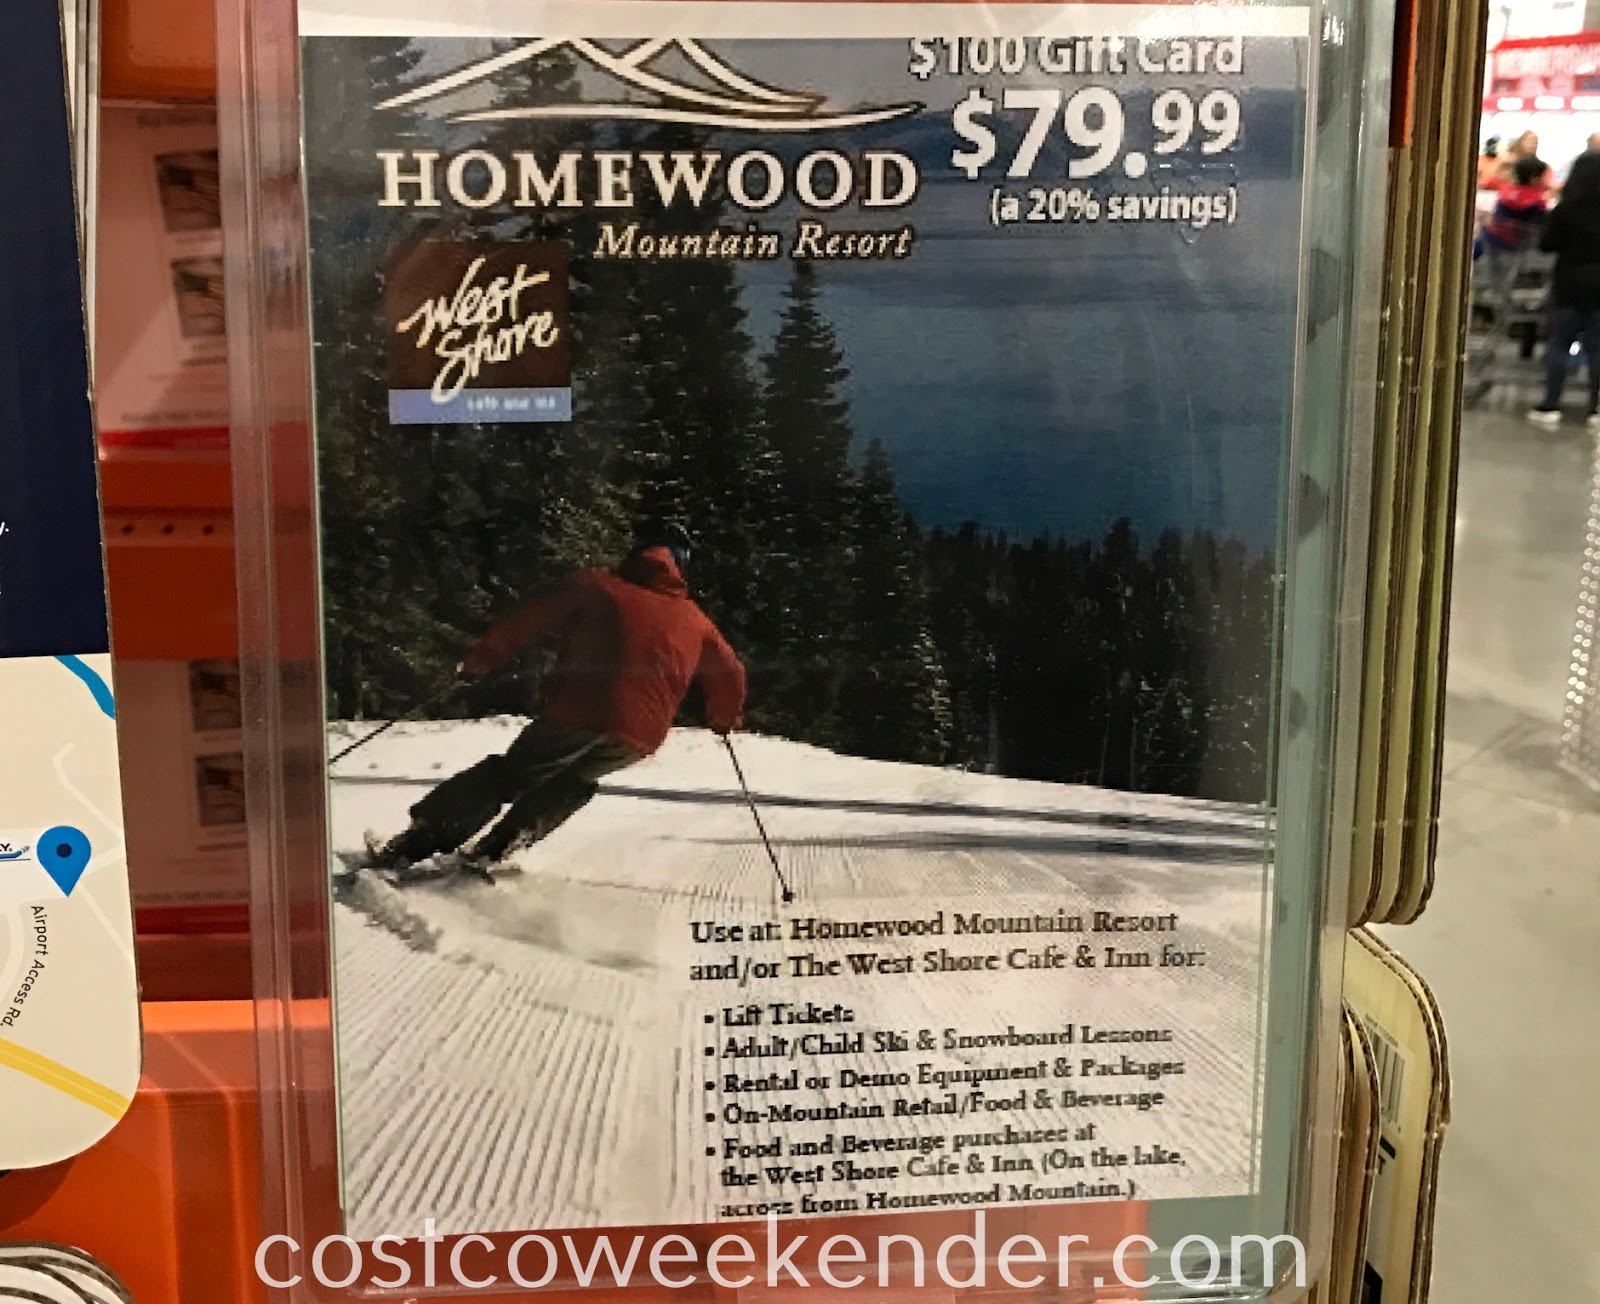 Ski/snowboard and save on a $100 gift card to Homewood Ski Resort in Tahoe